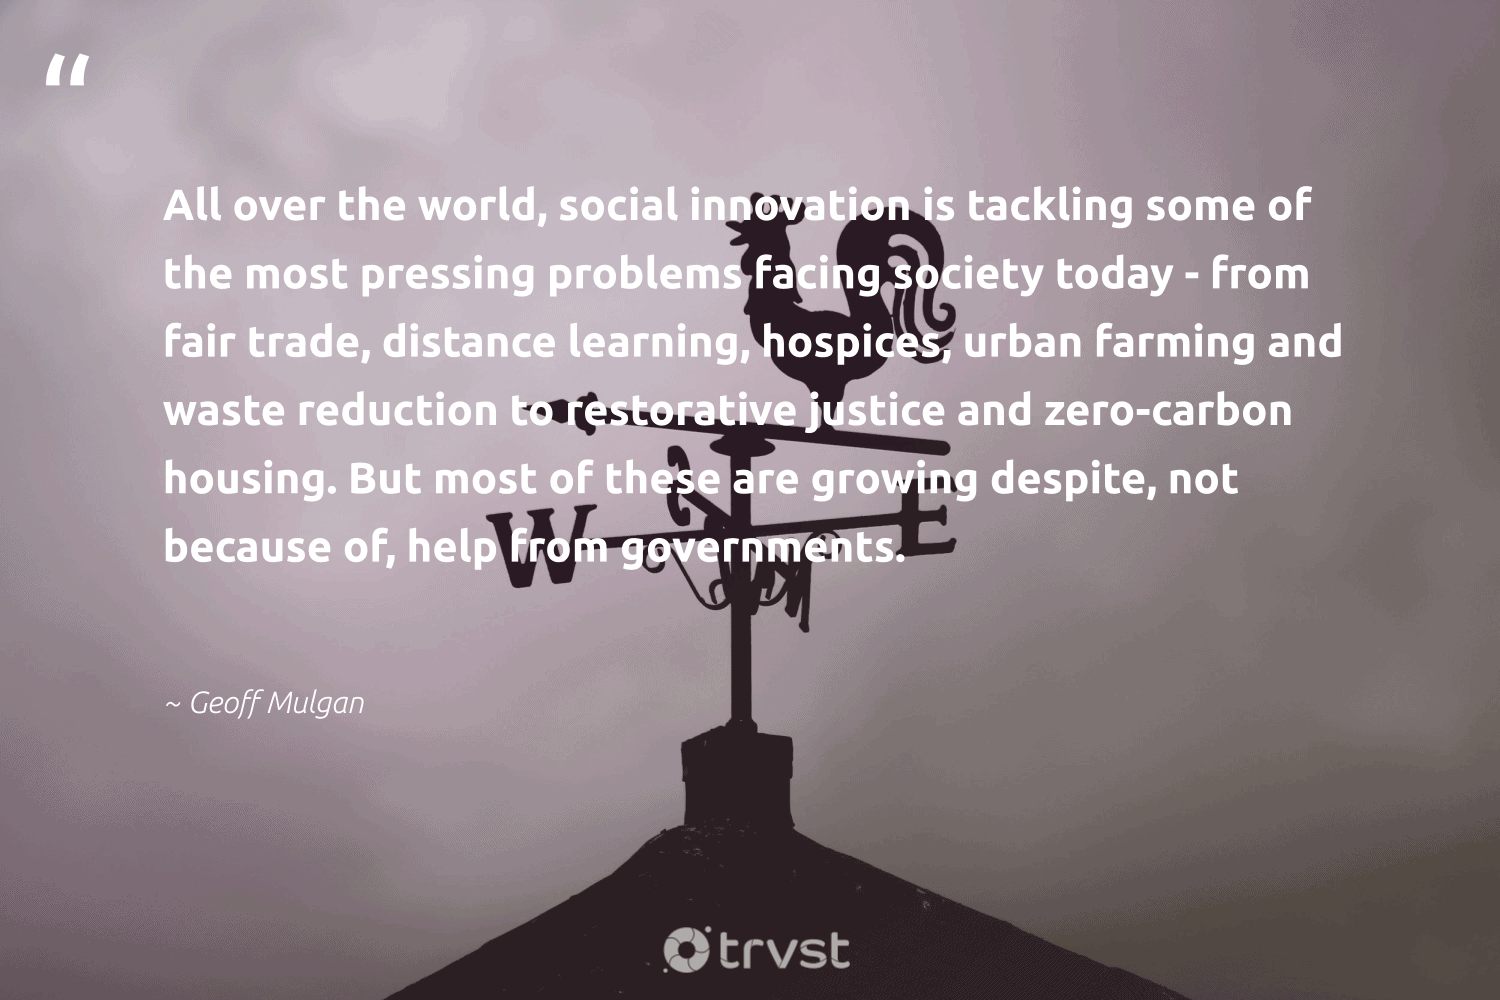 """""""All over the world, social innovation is tackling some of the most pressing problems facing society today - from fair trade, distance learning, hospices, urban farming and waste reduction to restorative justice and zero-carbon housing. But most of these are growing despite, not because of, help from governments.""""  - Geoff Mulgan #trvst #quotes #justice #waste #carbon #zerocarbon #socialinnovation #society #betterplanet #dosomething #makeadifference #ecoconscious"""